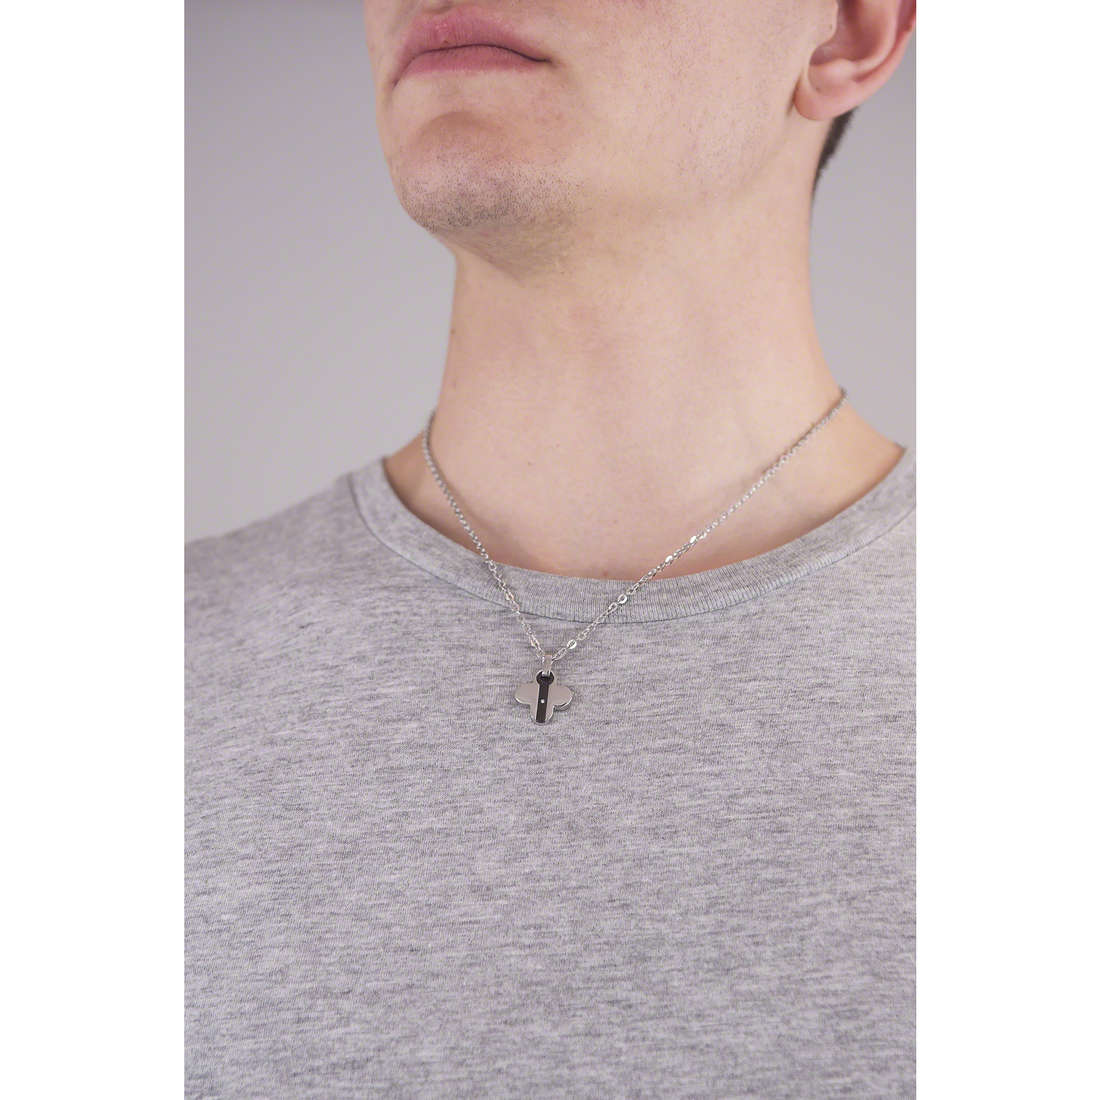 Comete colliers Basic homme UGL 339 photo wearing